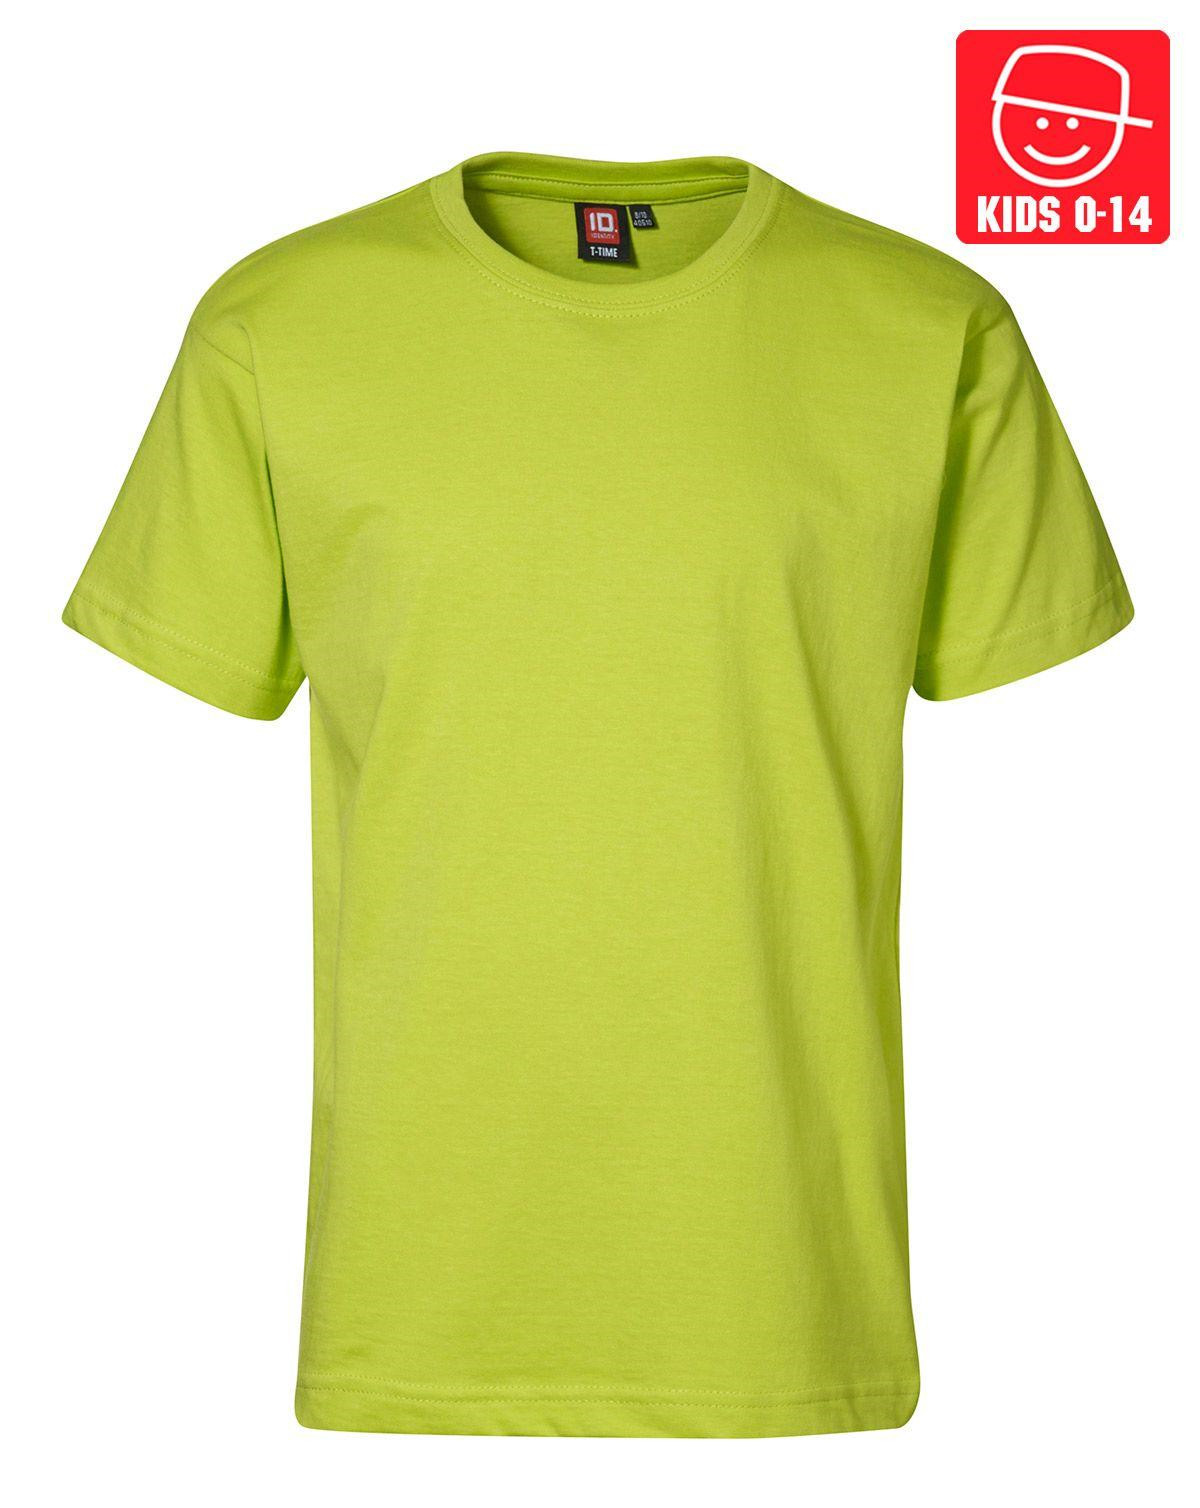 Image of   ID T-TIME T-shirt (Lime, 158)